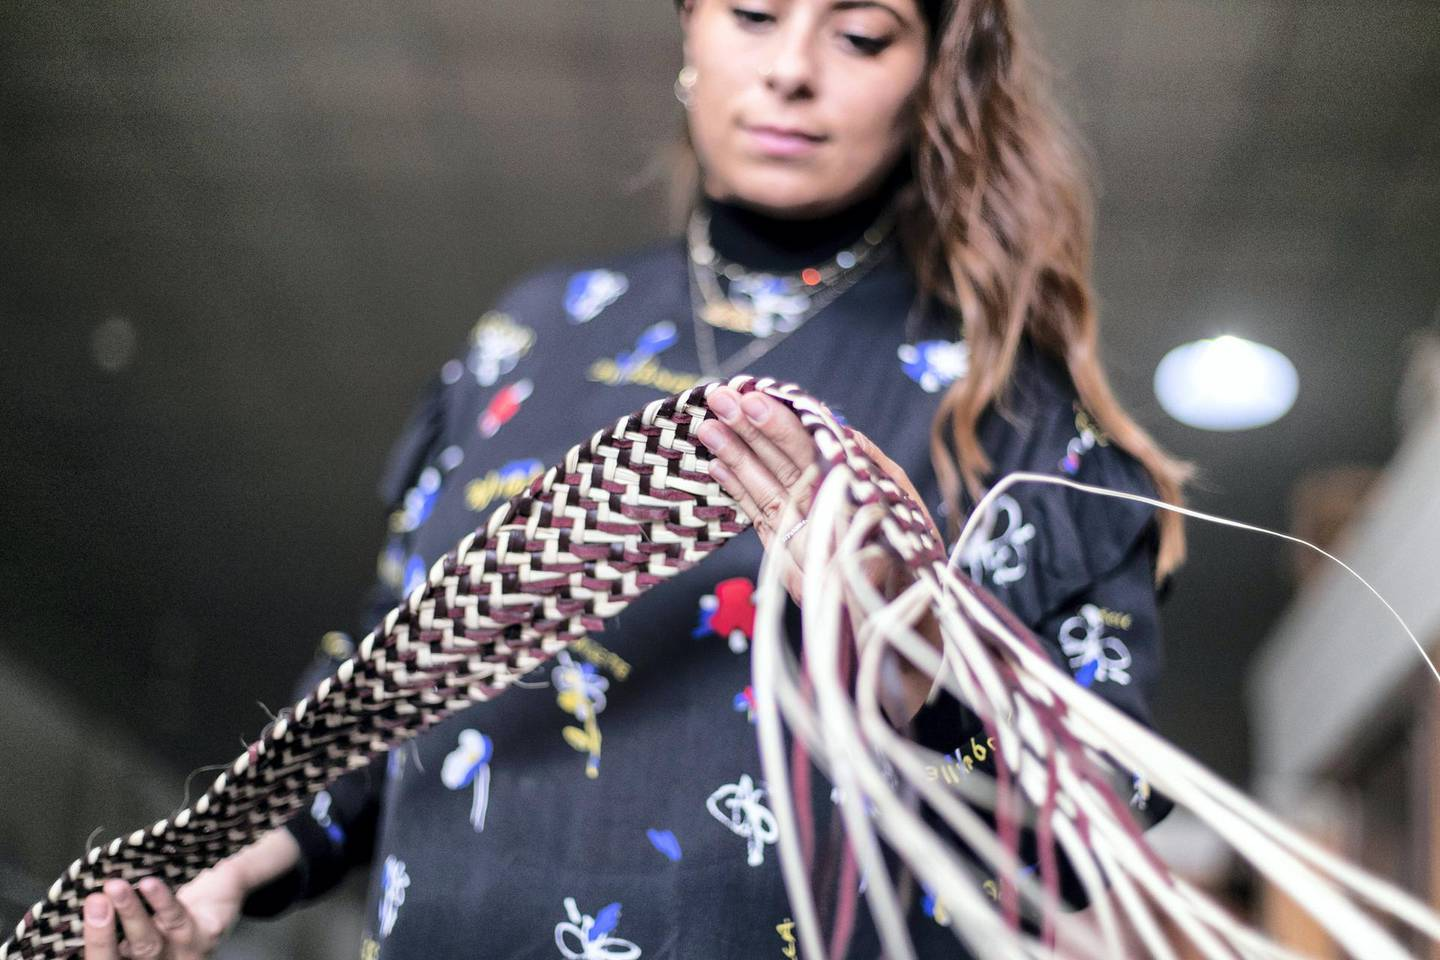 SHARJAH, UNITED ARAB EMIRATES. 7 SEPTEMBER 2019. Lana El Samman inspects a khoos sample.Lana El Samman is currently a resident designer in Tashkeel's Tanween program. The program is open to emerging designers, makers and artisans living and working in the UAE.Lana El Samman is of Lebanese origin, and grew up in Beirut and later Canada, where she studied interior design followed by a Master's degree at the Florence Institute of Design, Italy. Her career began as a teaching assistant at the American University of Sharjah before joining Sharjah Art Foundation, which has been her home for the past eight years working as an interior designer and then progressing to become a significant member of the production programme. In the SAF Production Programme, Samman has had the chance to further her furniture design practice and create pieces used by the Foundation for various events.(Photo: Reem Mohammed/The National)Reporter: KATE HAZELLSection: WK